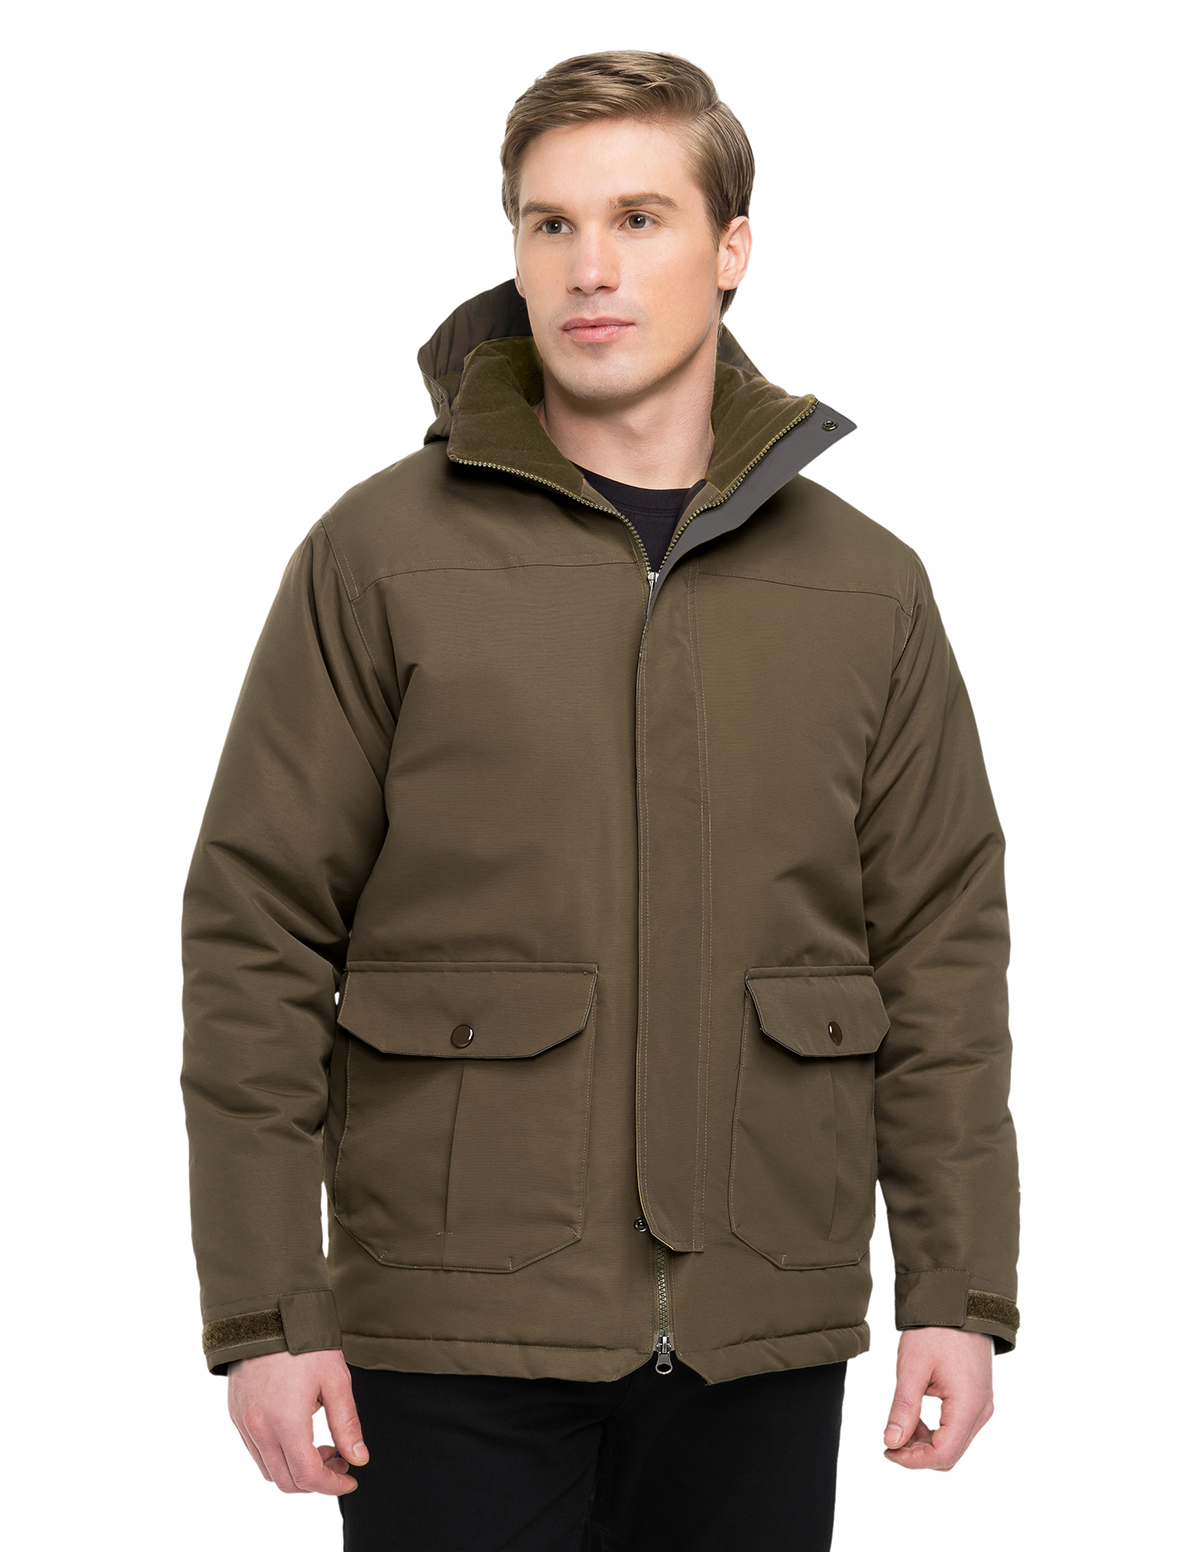 Tri-Mountain J8960 - Aspen Men's Heavyweight Jacket